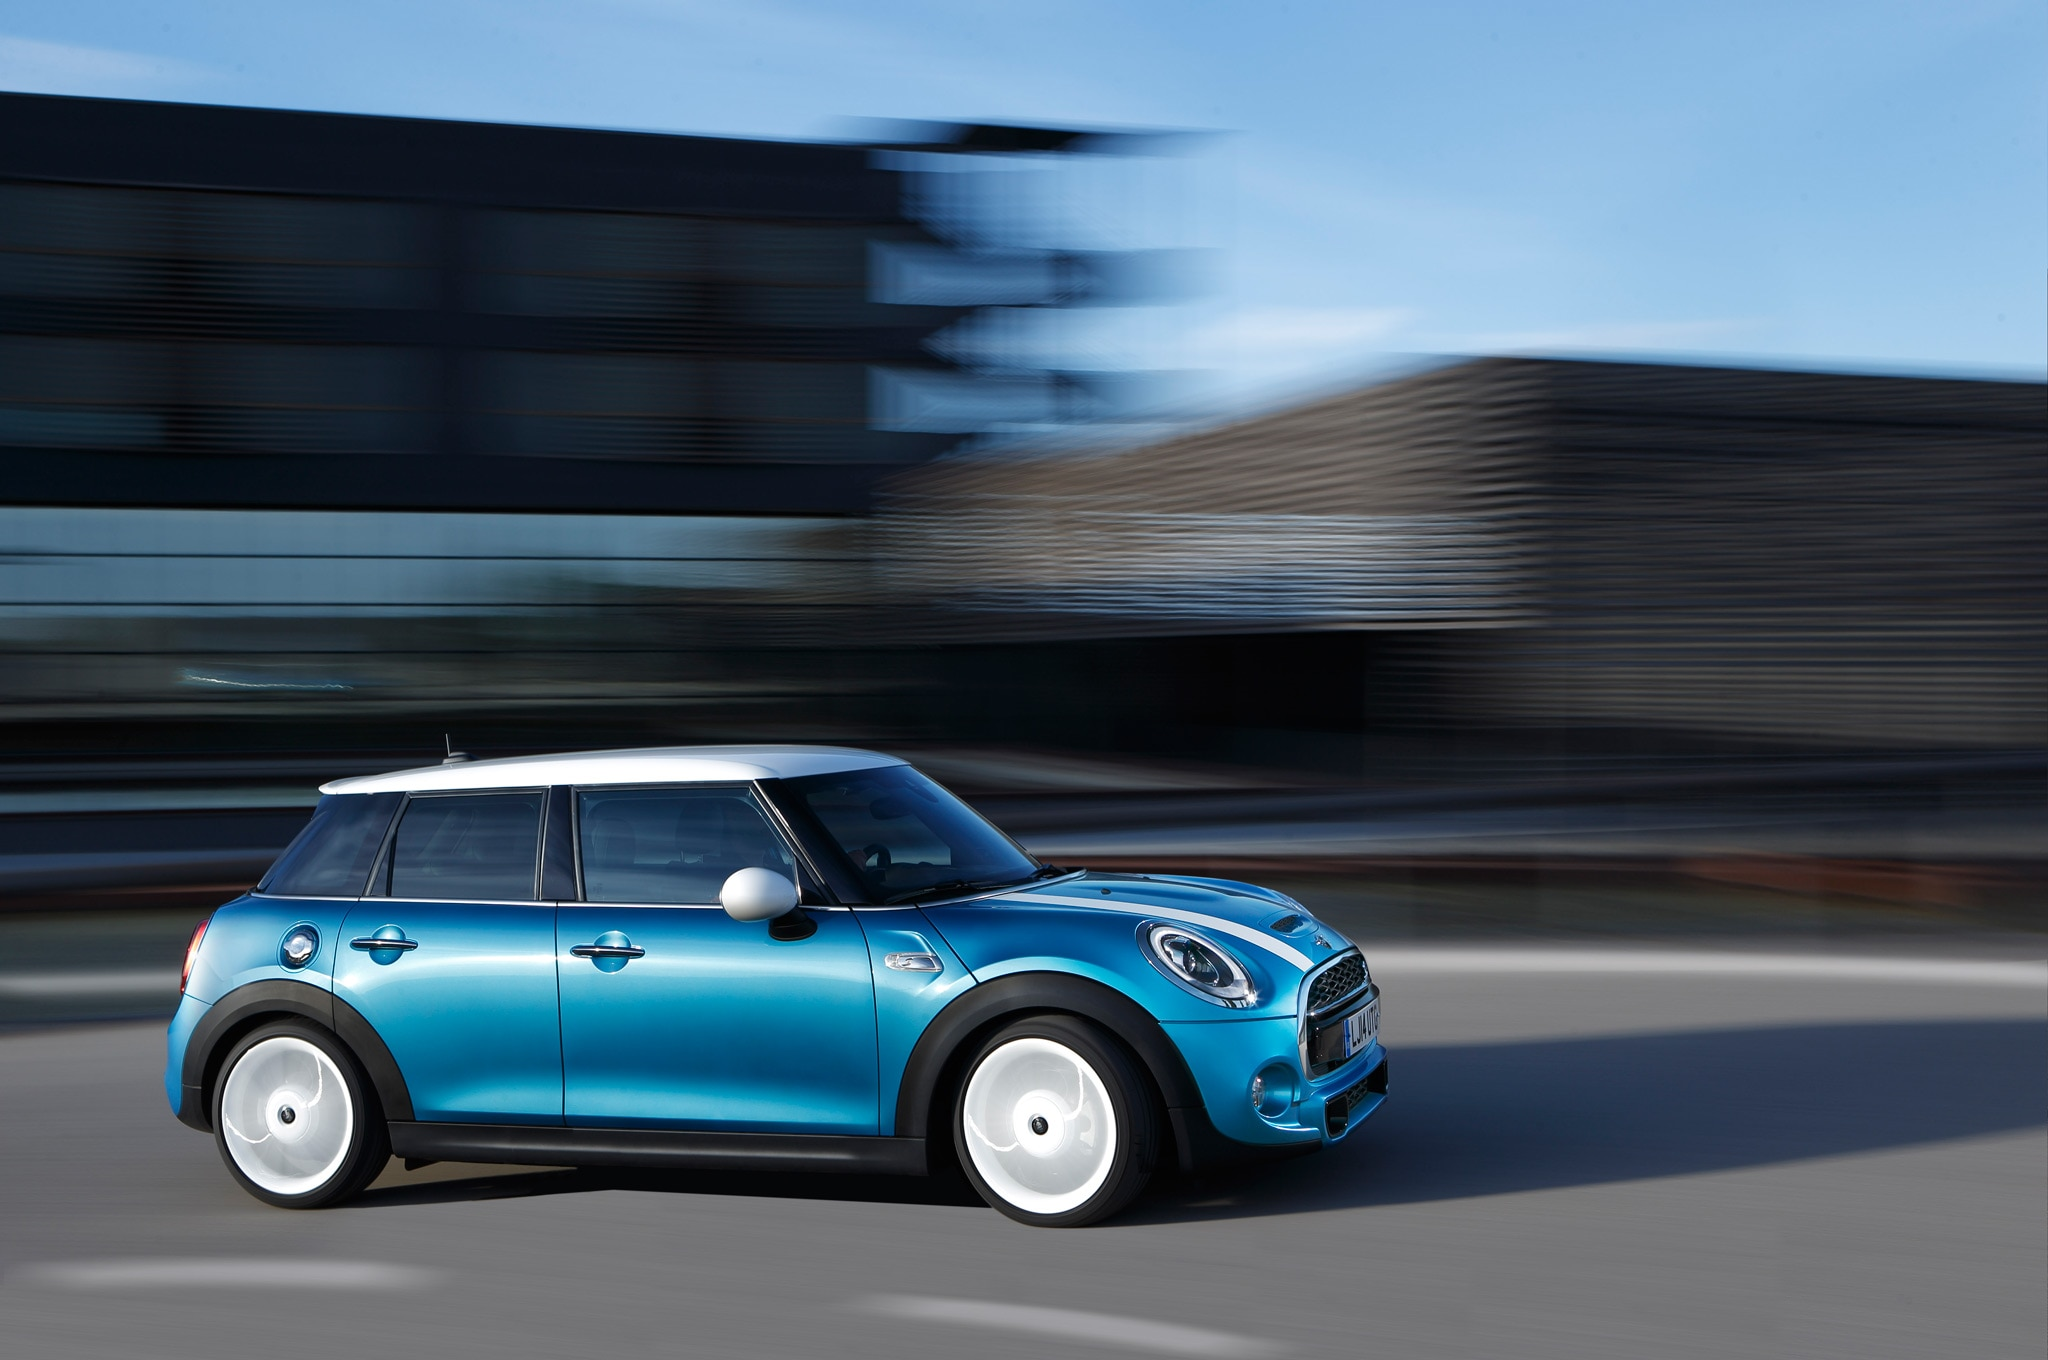 2015 Mini Cooper Hardtop 4-Door Review